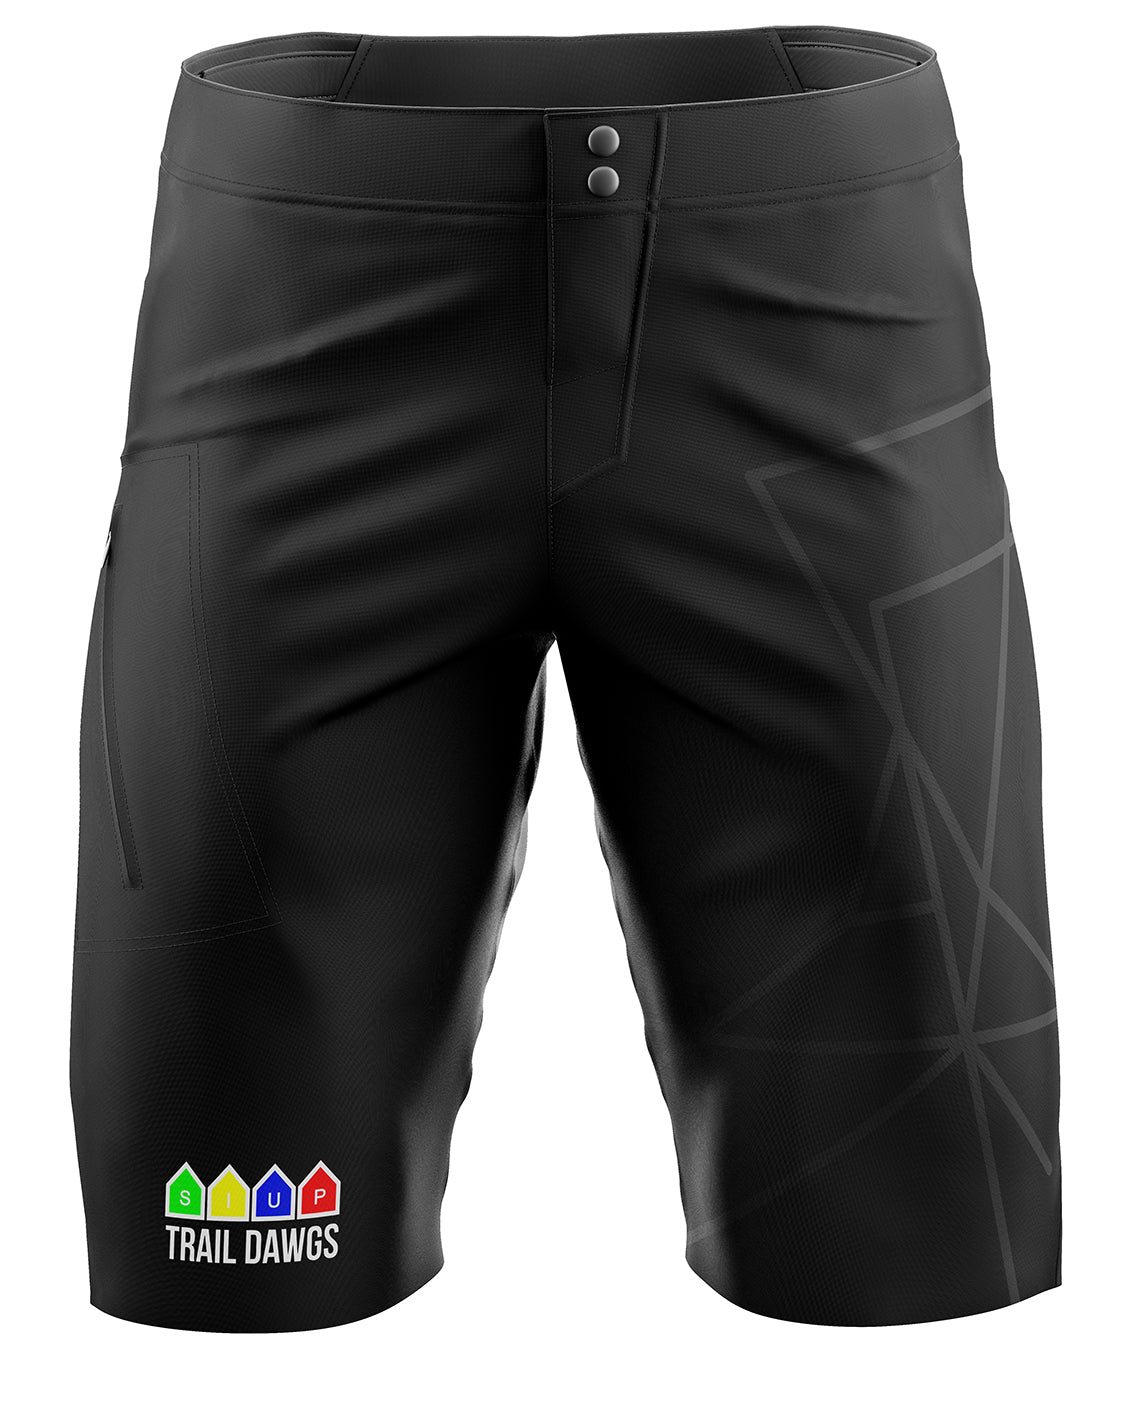 Traildawgs Trail Shorts